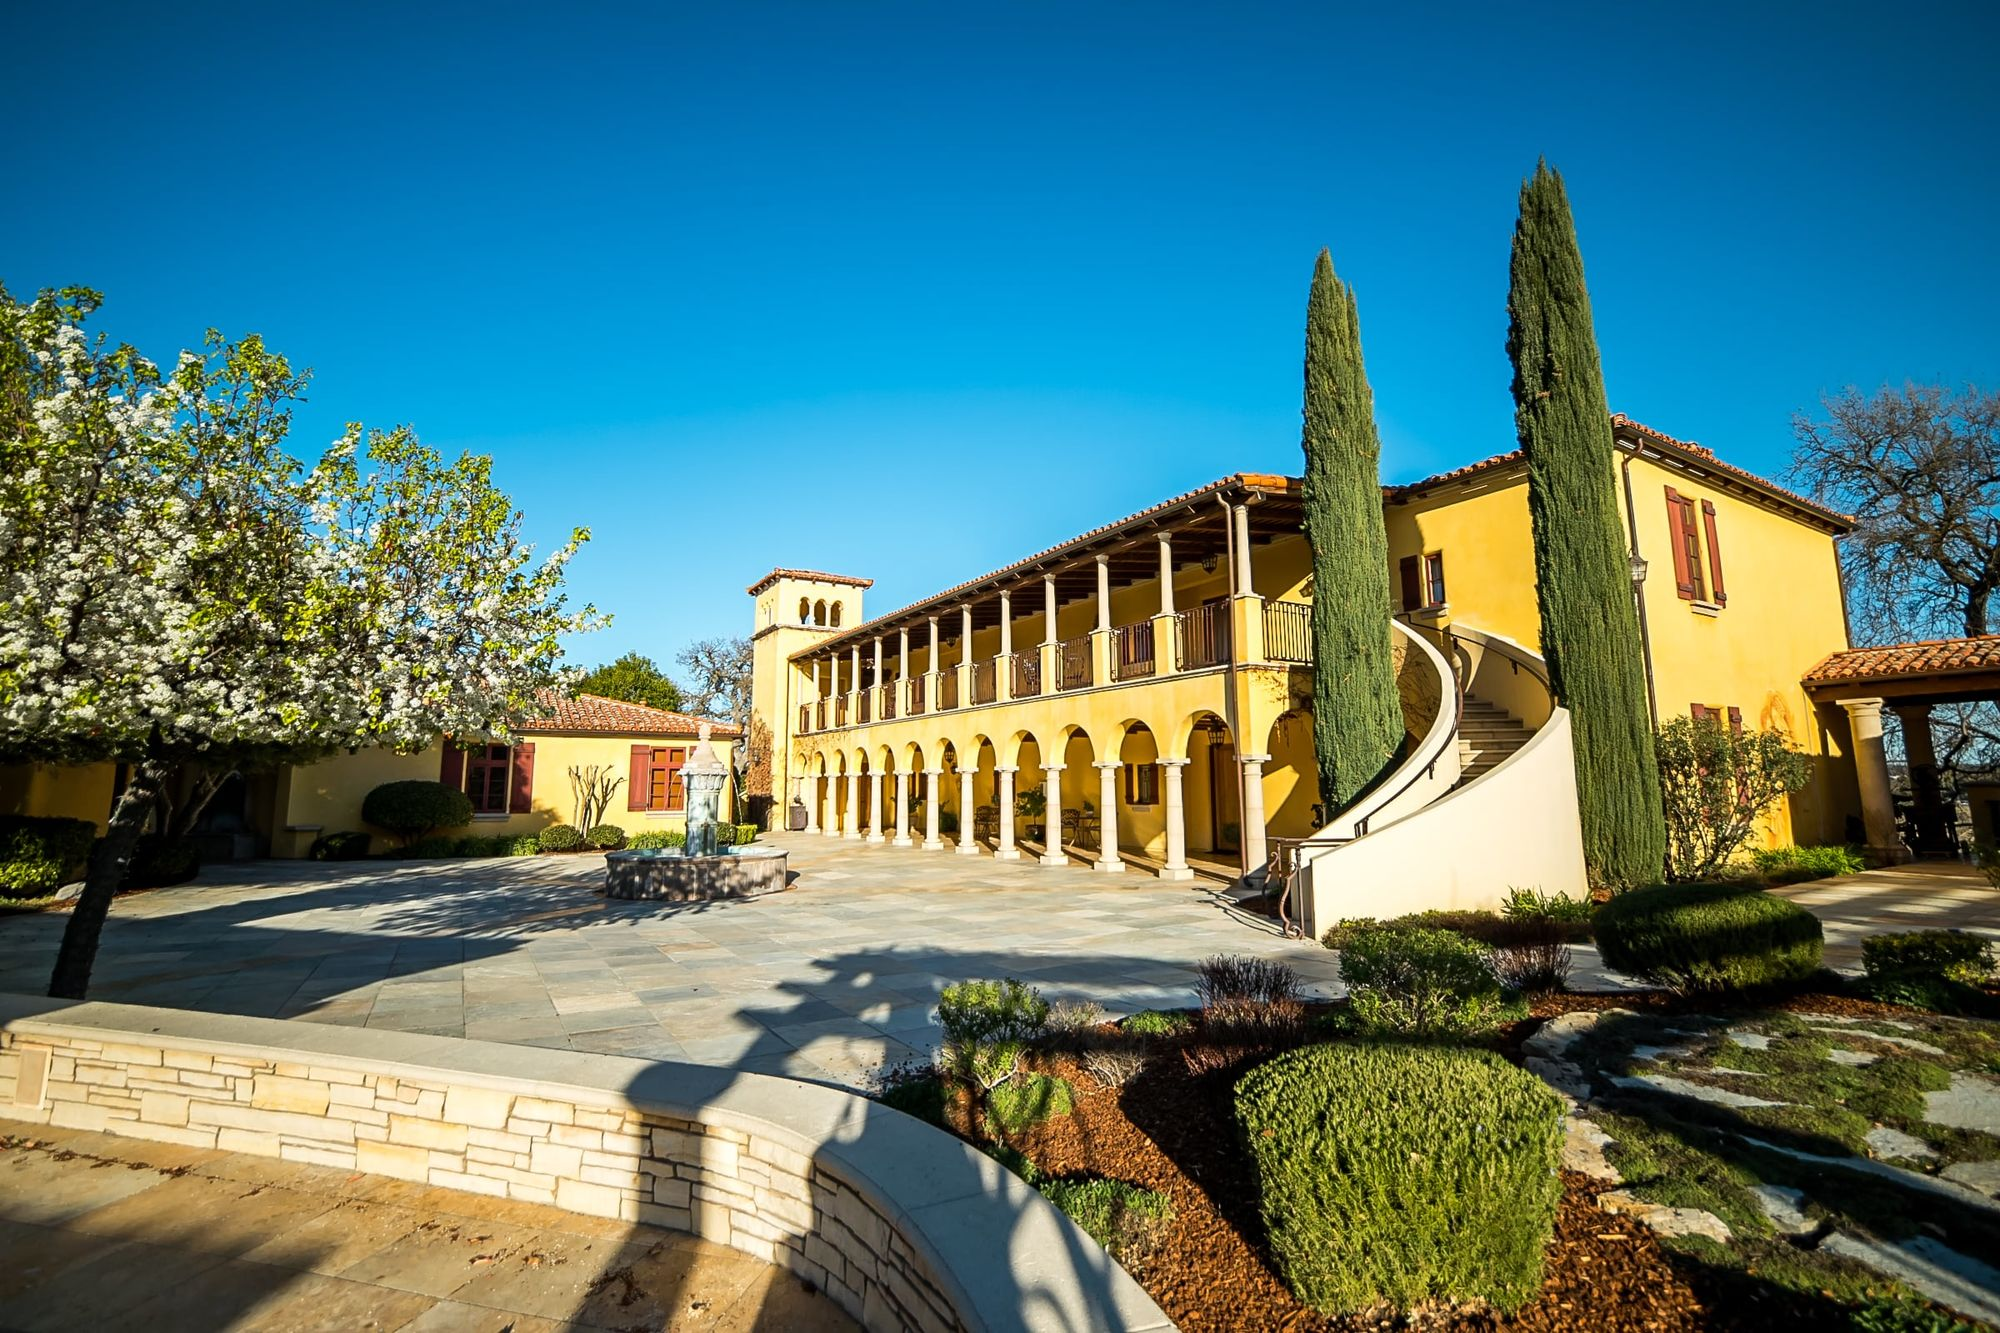 Italian style building with flag stone patio and cypress trees